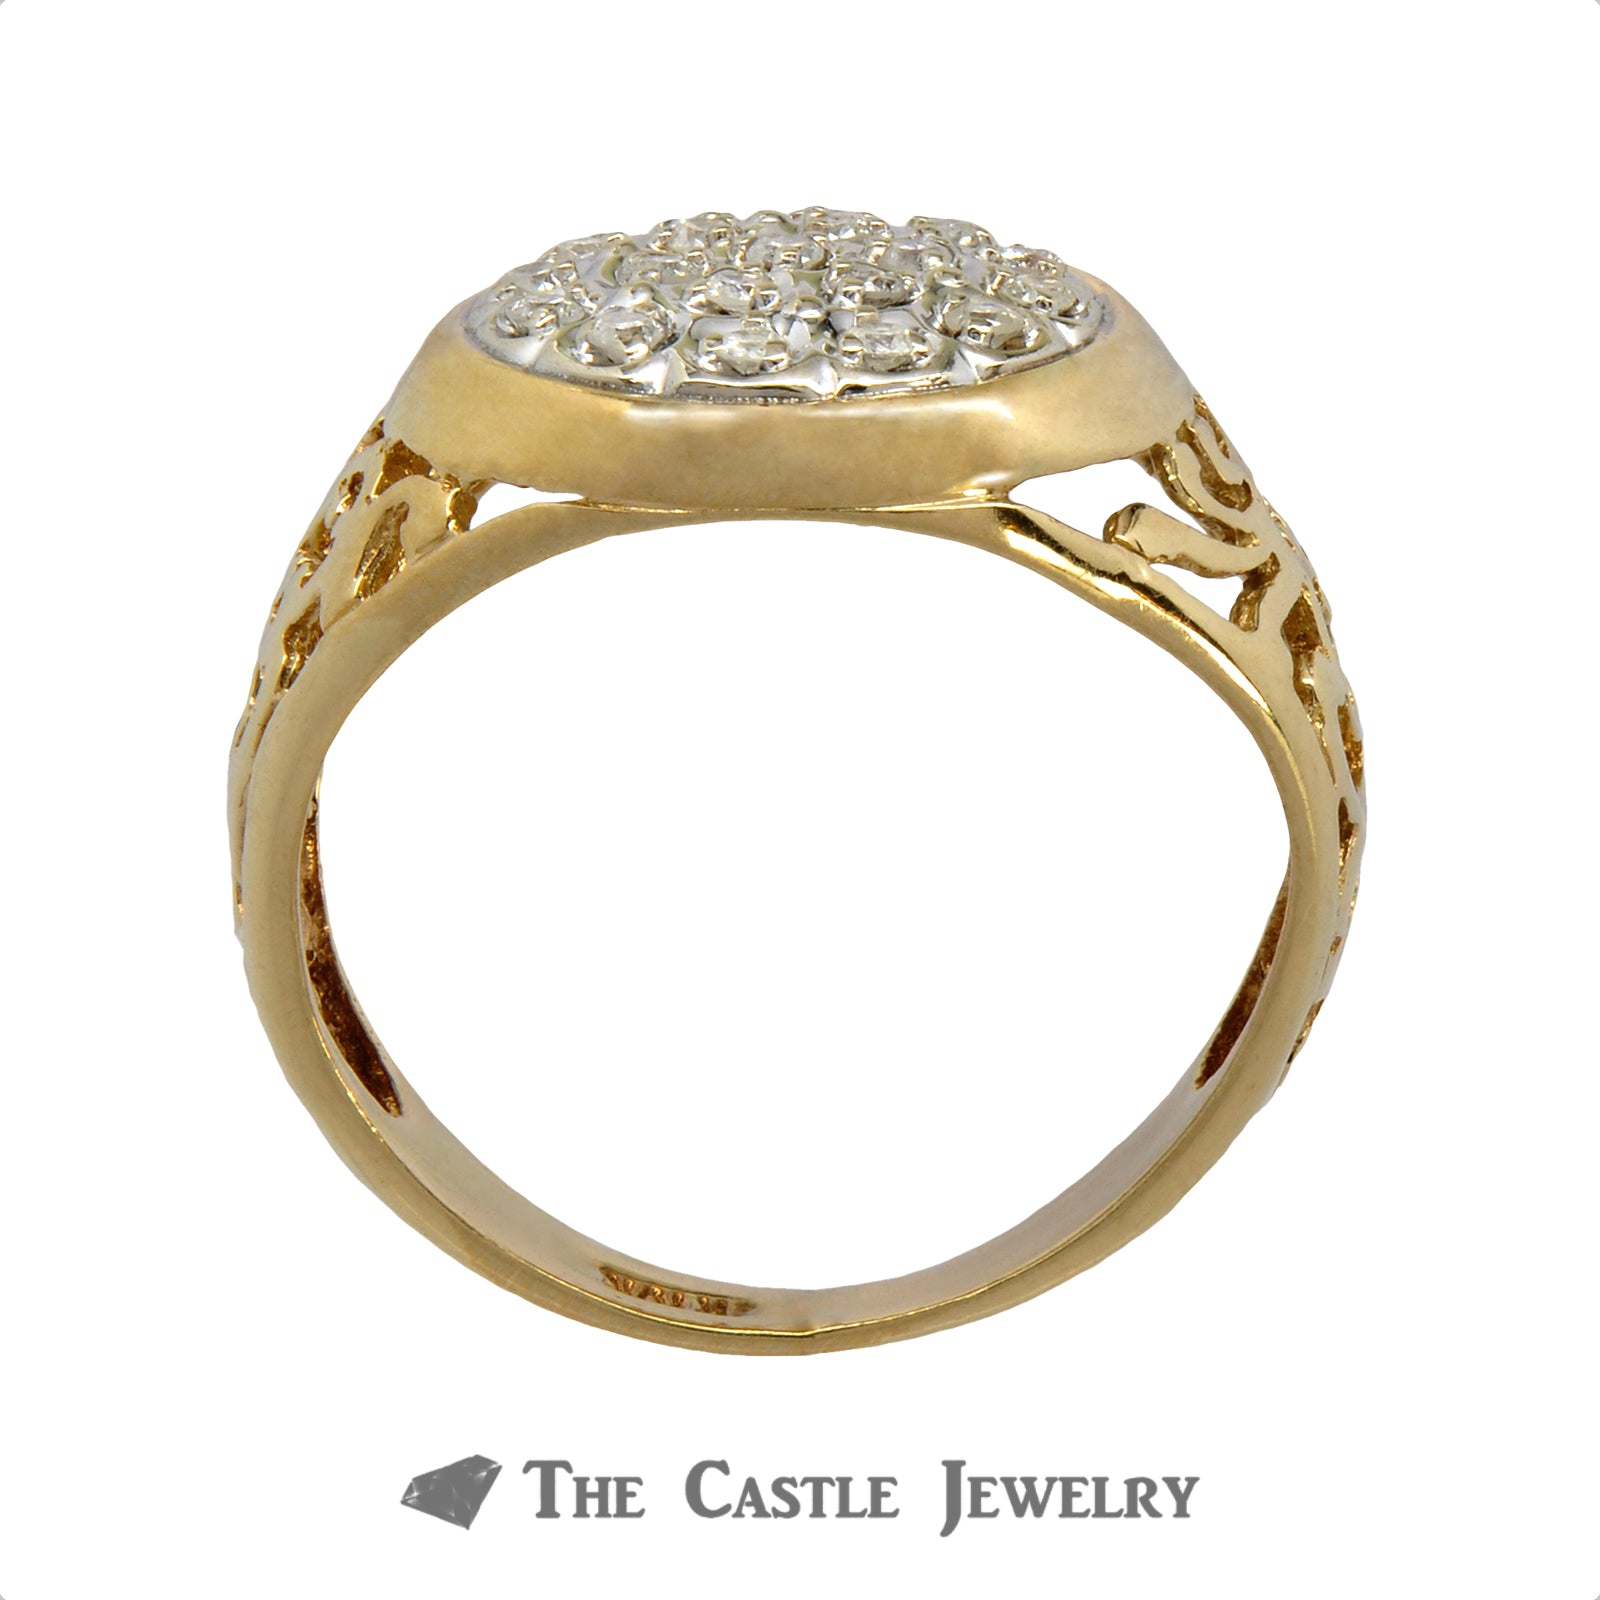 .25cttw Diamond Kentucky Cluster Ring in 10k Yellow Gold-1